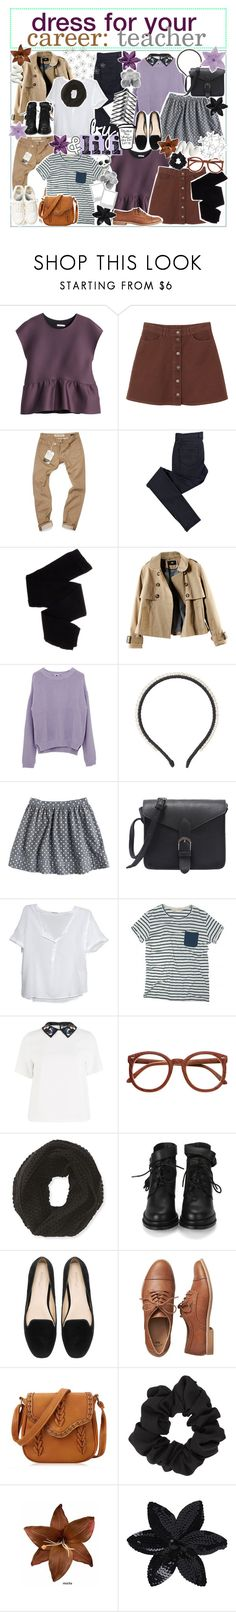 """☼; dress for your career: teacher"" by ocean-clique-xo ❤ liked on Polyvore featuring H&M, Monki, Williamsburg Garment Company, C.R.A.F.T., Trasparenze, N°21, American Vintage, Sportmax, Aéropostale and Zara"